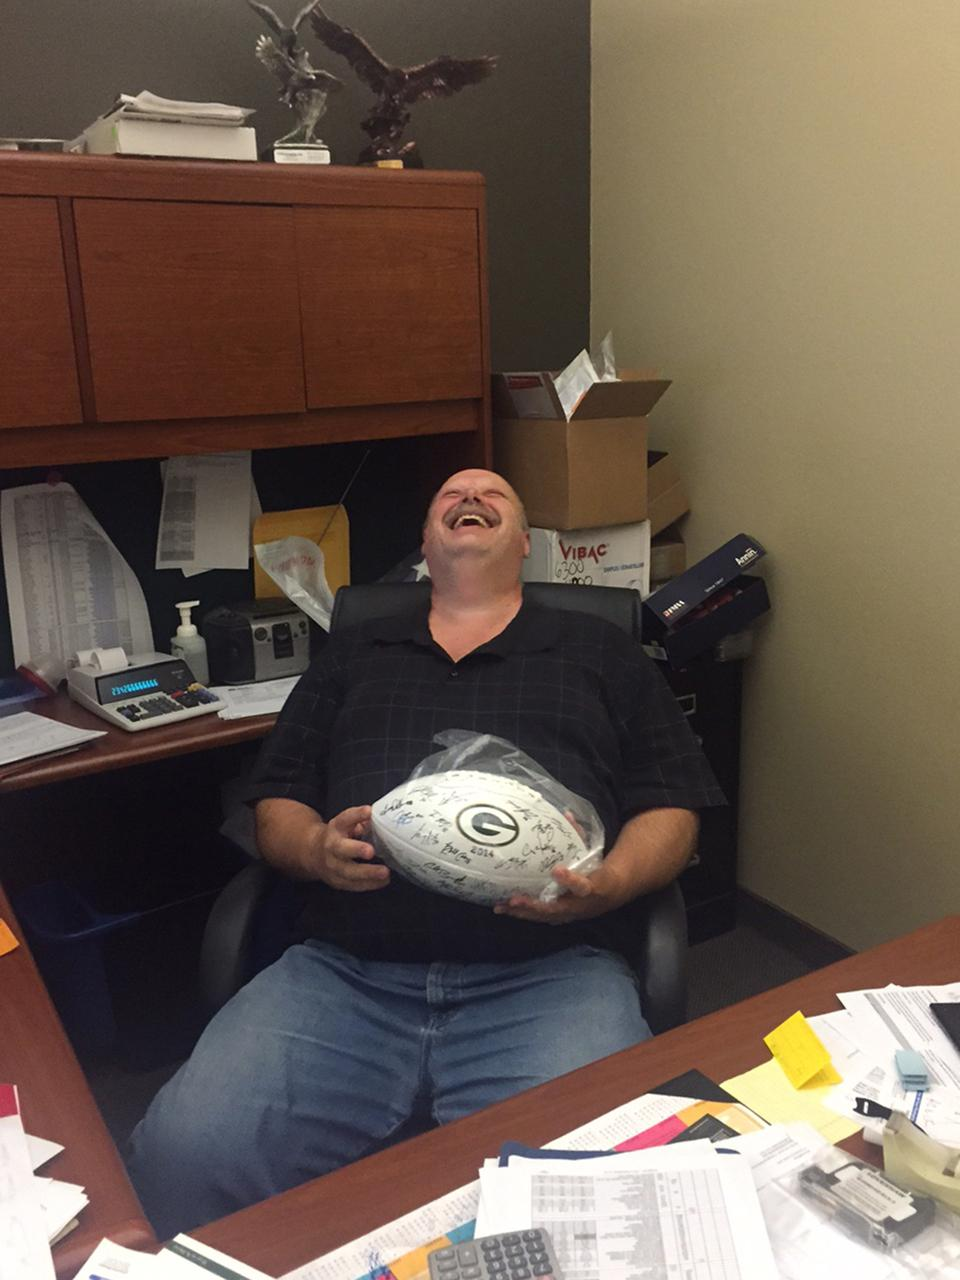 Wes wins an autographed Packers football.